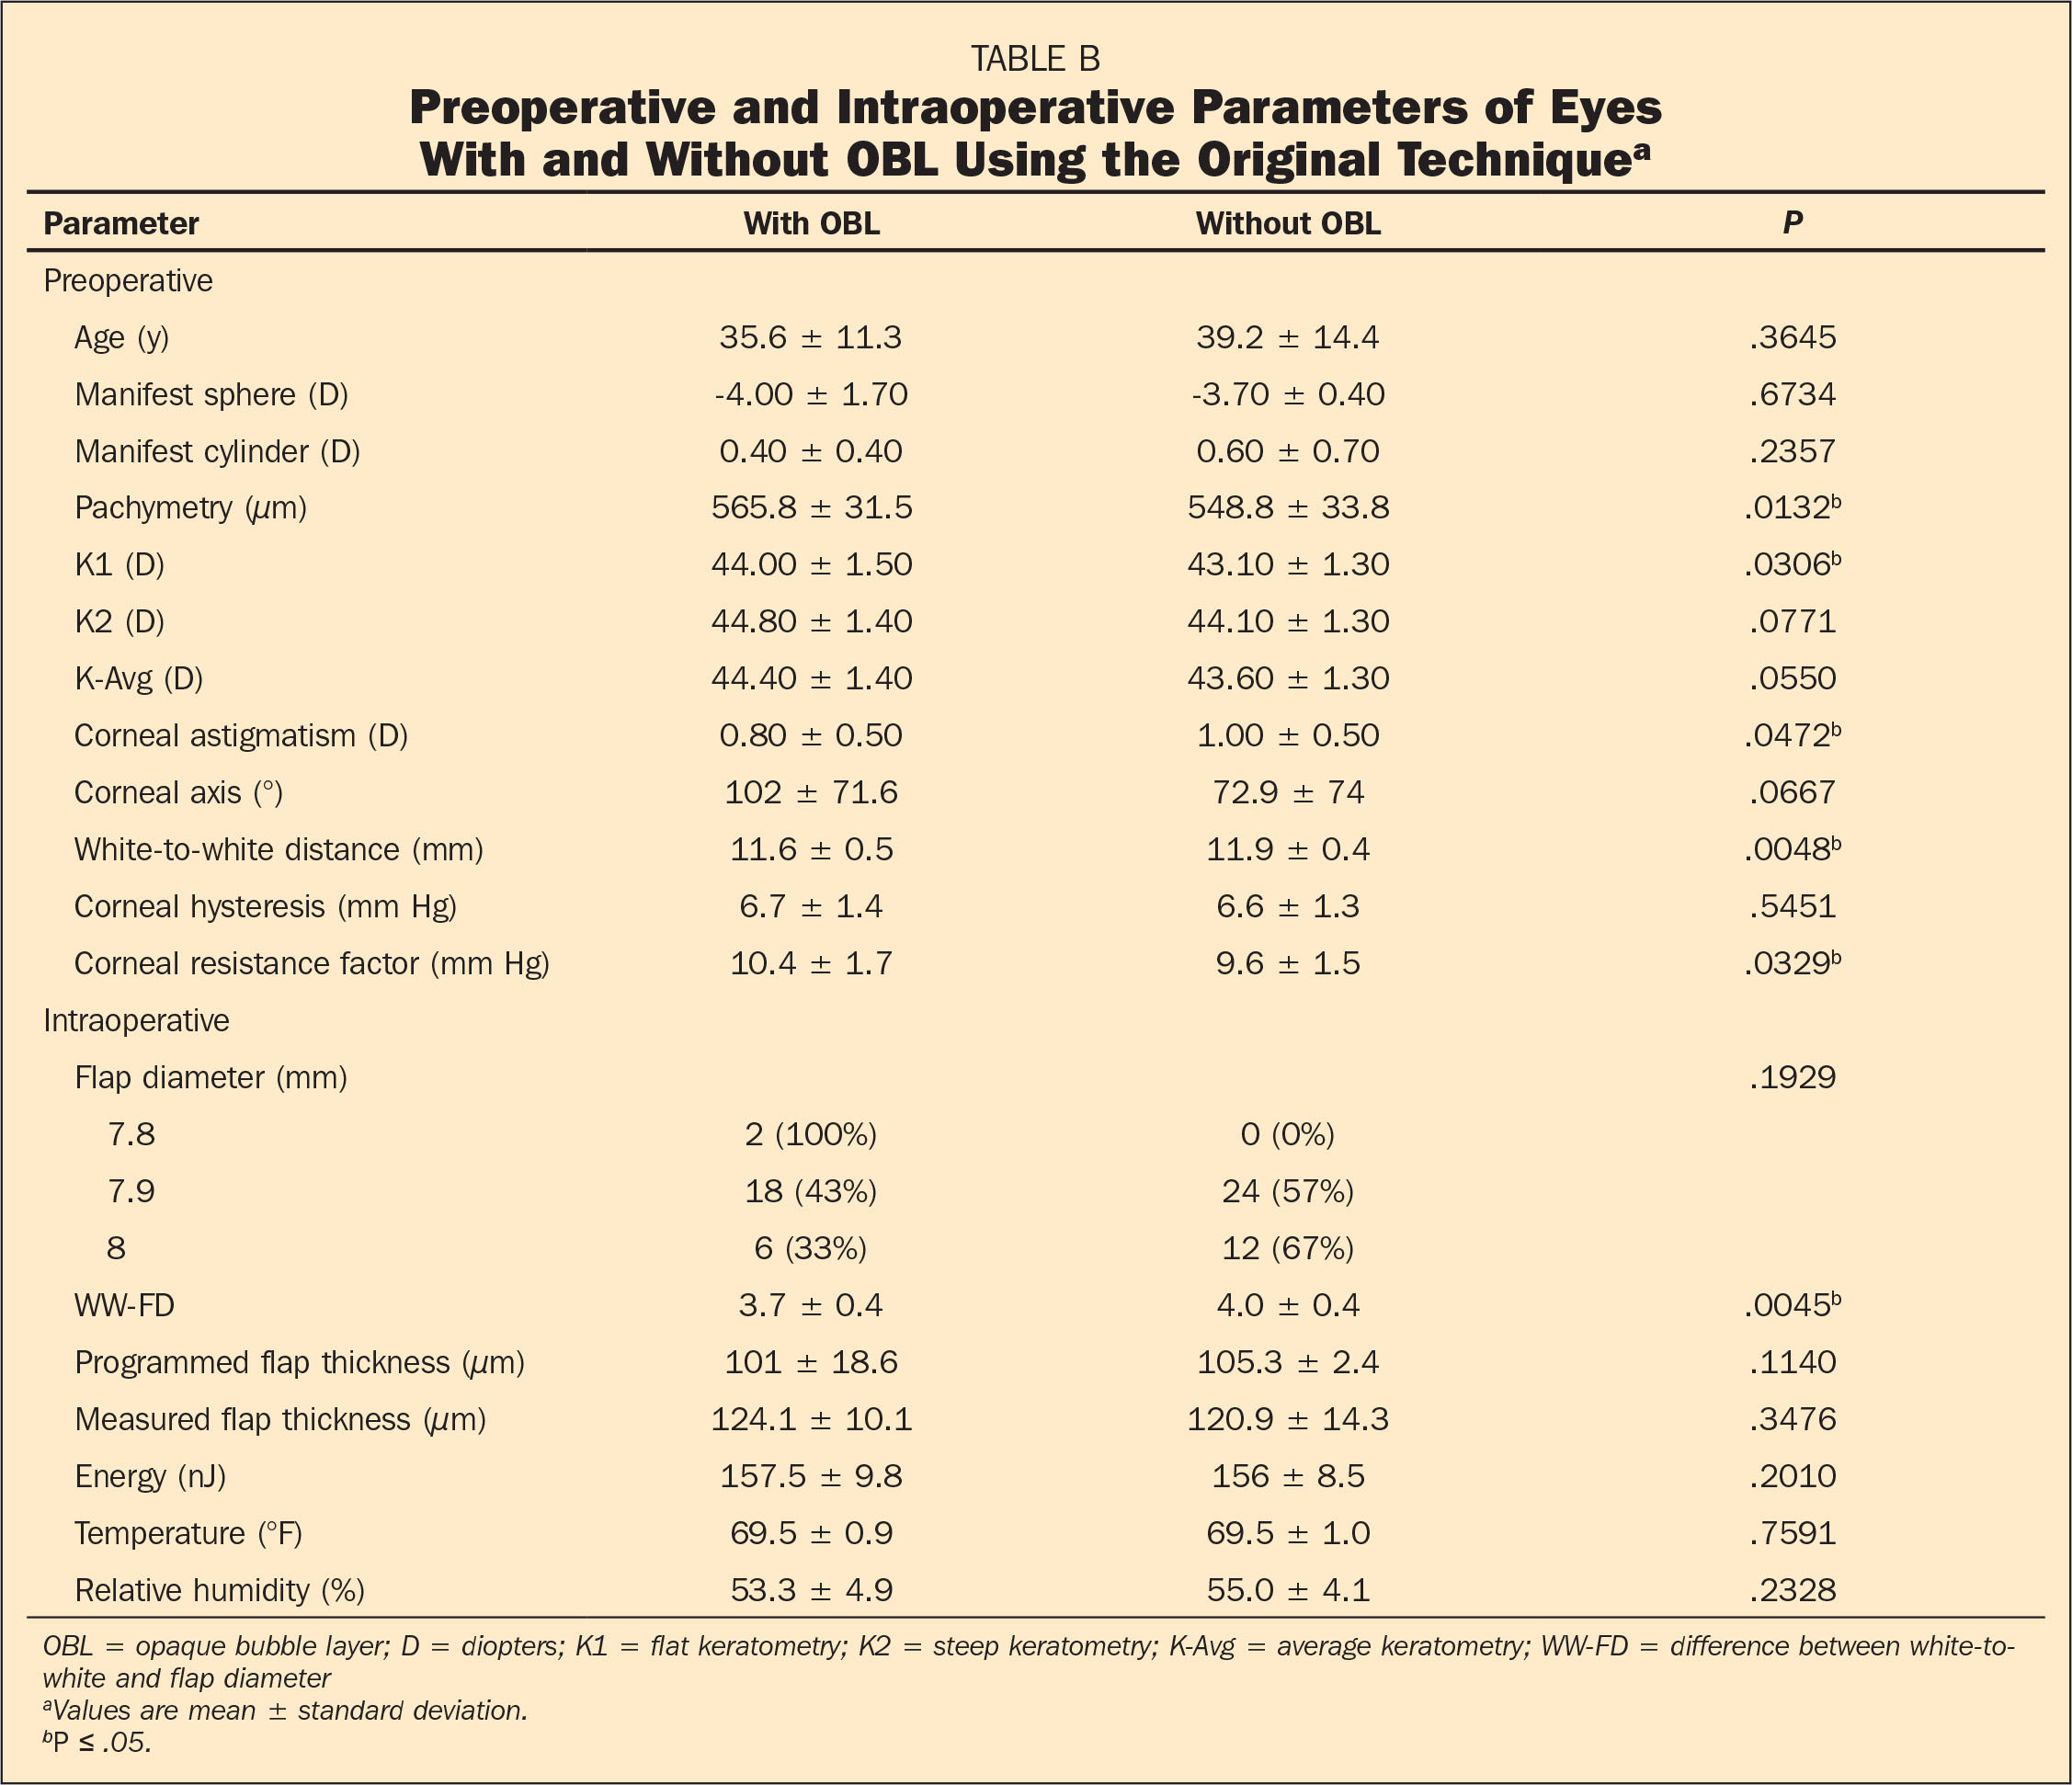 Preoperative and Intraoperative Parameters of Eyes With and Without OBL Using the Original Techniquea